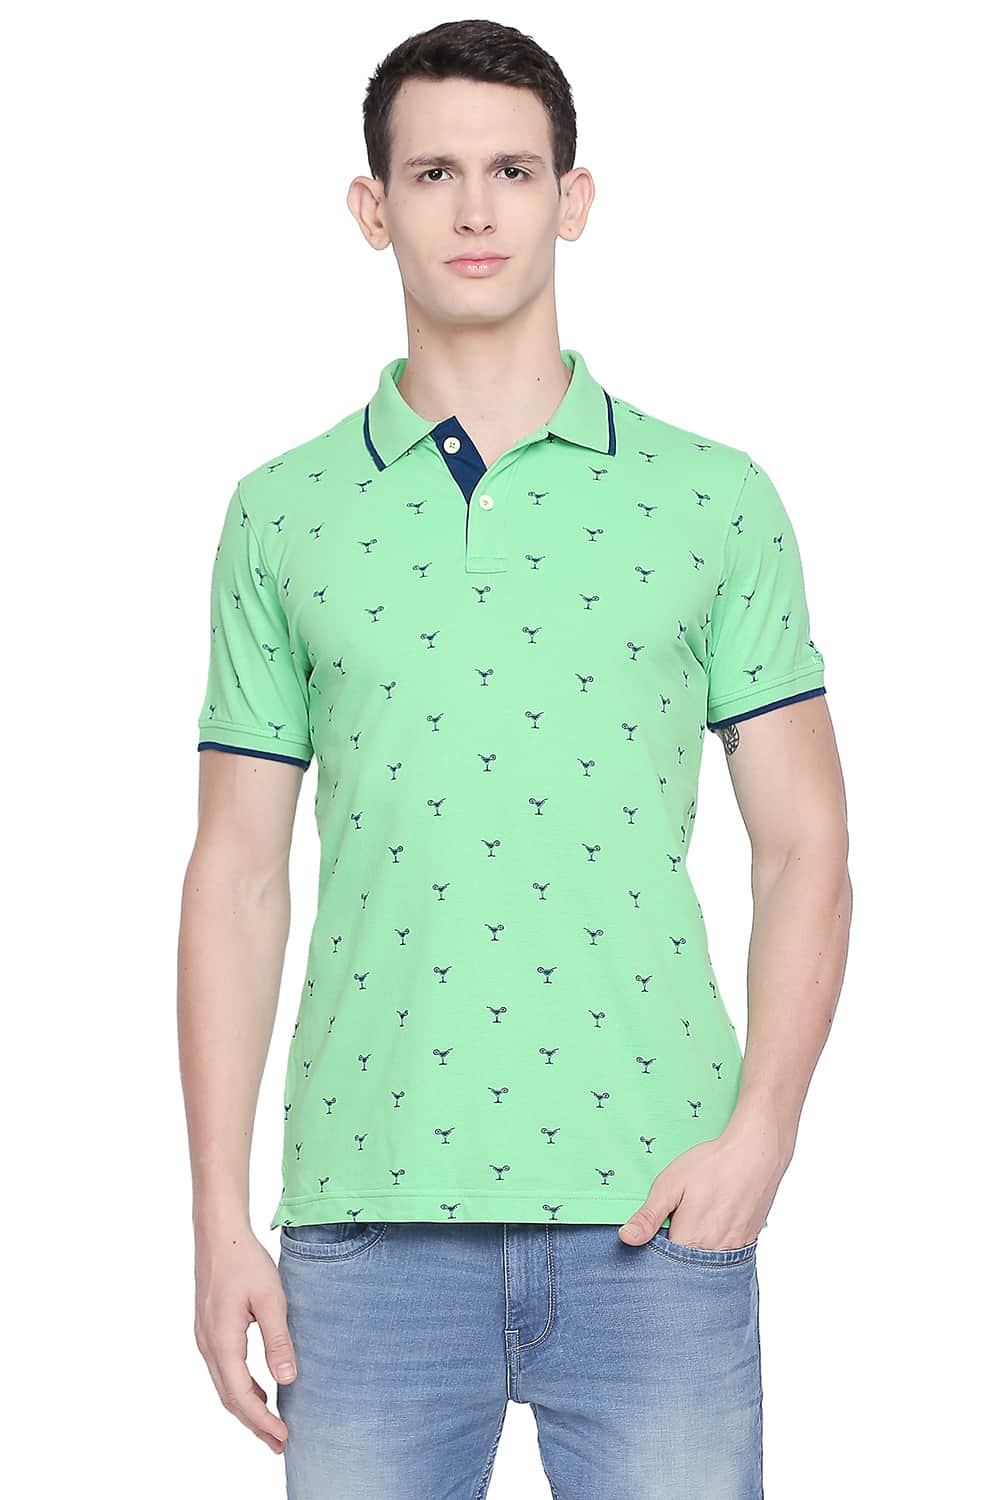 Basics | Basics Muscle Fit Spring Bouquet Printed Polo T Shirt